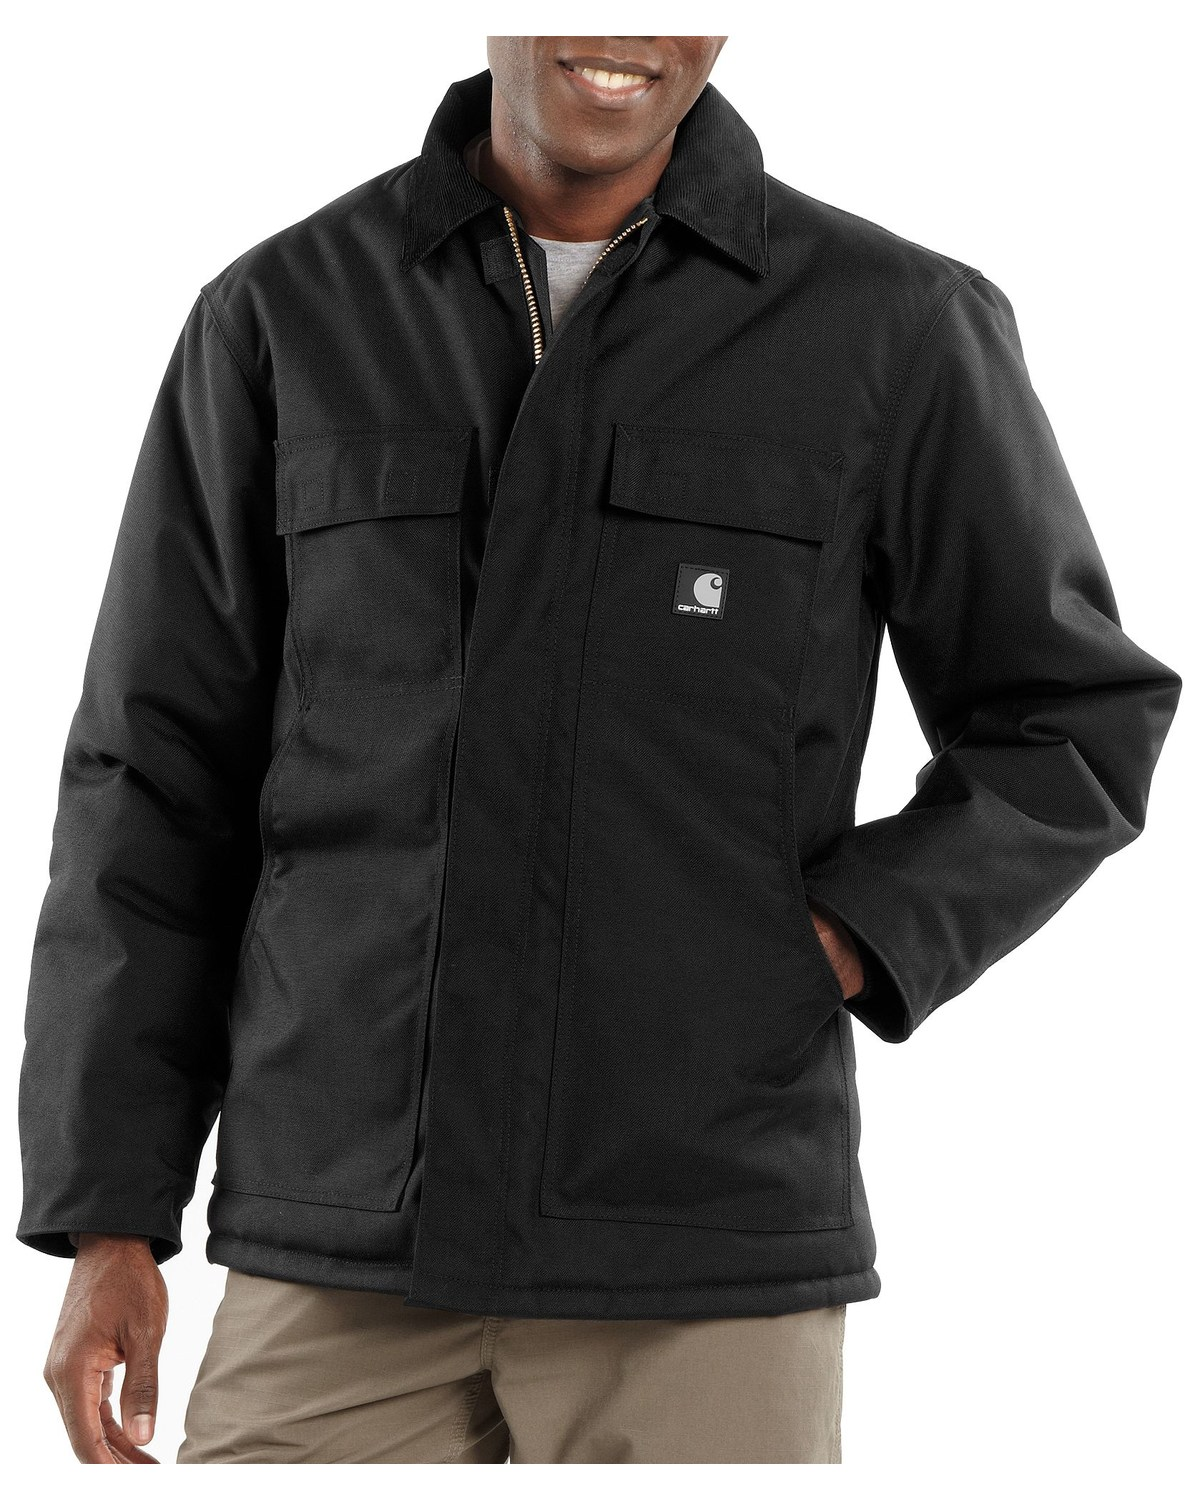 4ee4495b944 Zoomed Image Carhartt Men's Extremes Active Arctic Quilt Lined Jacket,  Black, hi-res. Zoomed Image ...